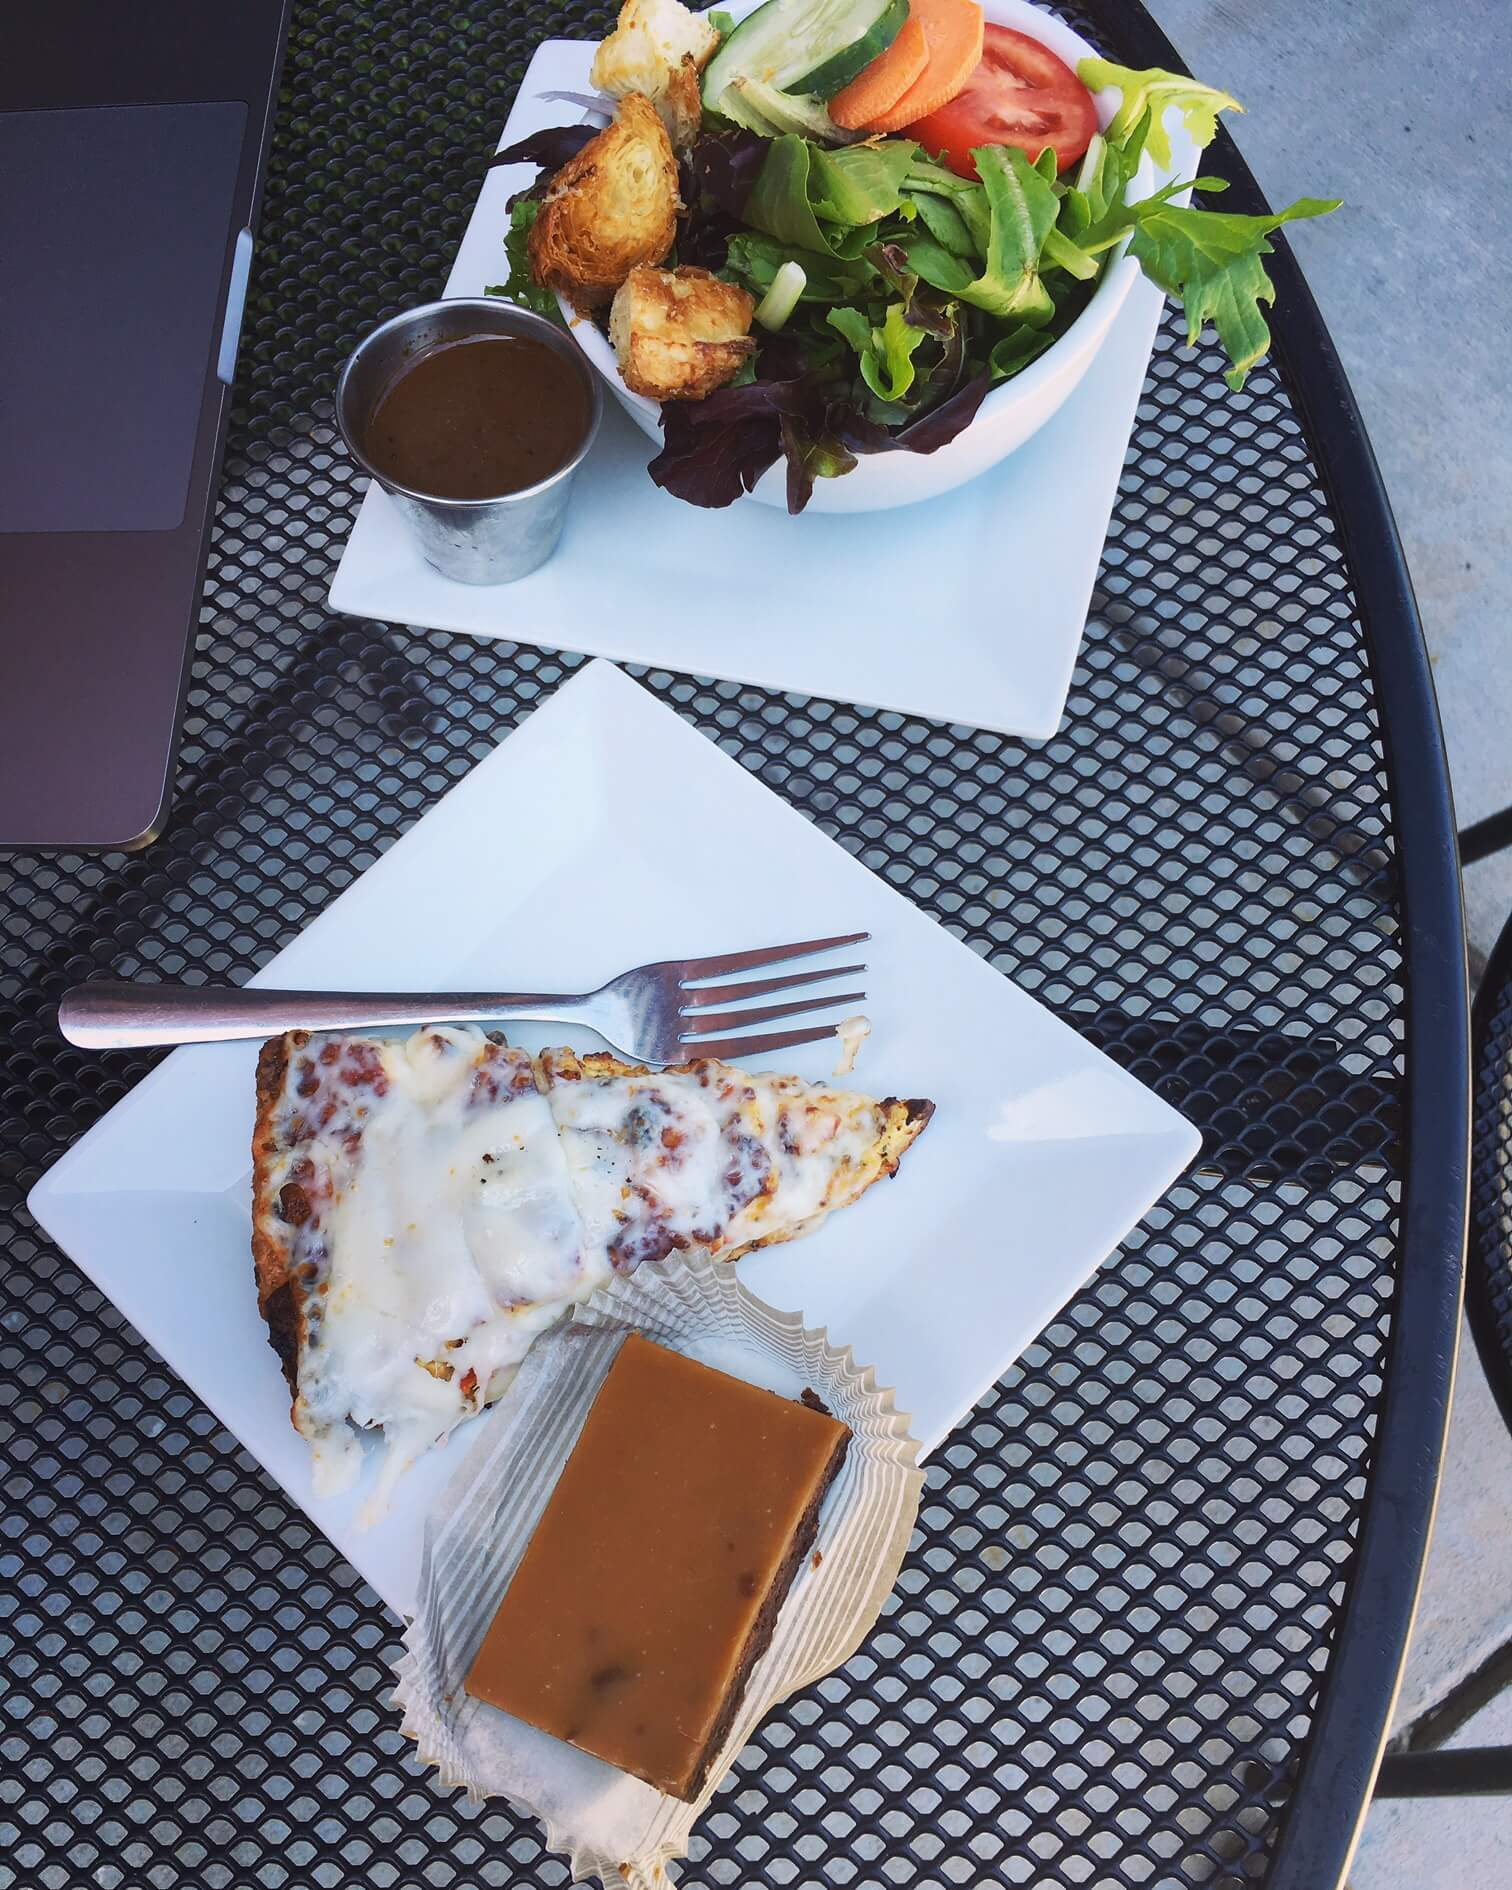 Quiche, a side salad and a salted caramel brownie.